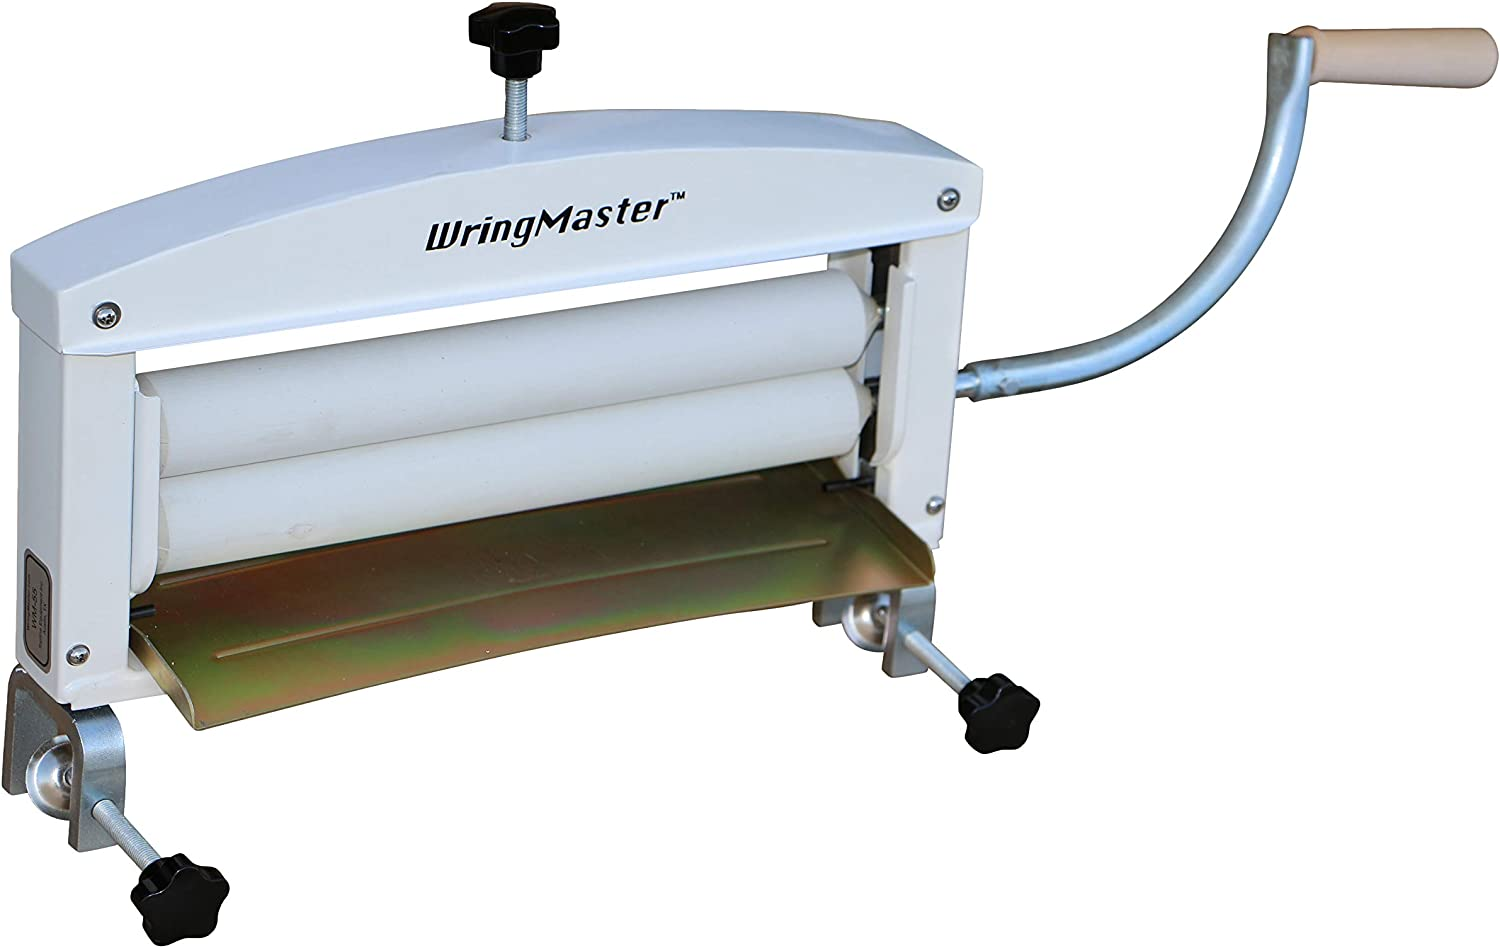 "WringMaster Clothes Wringer Hand Crank - Extra Wide 14"" Rollers - for Home, Boating, Camping, Laundry Dryer"